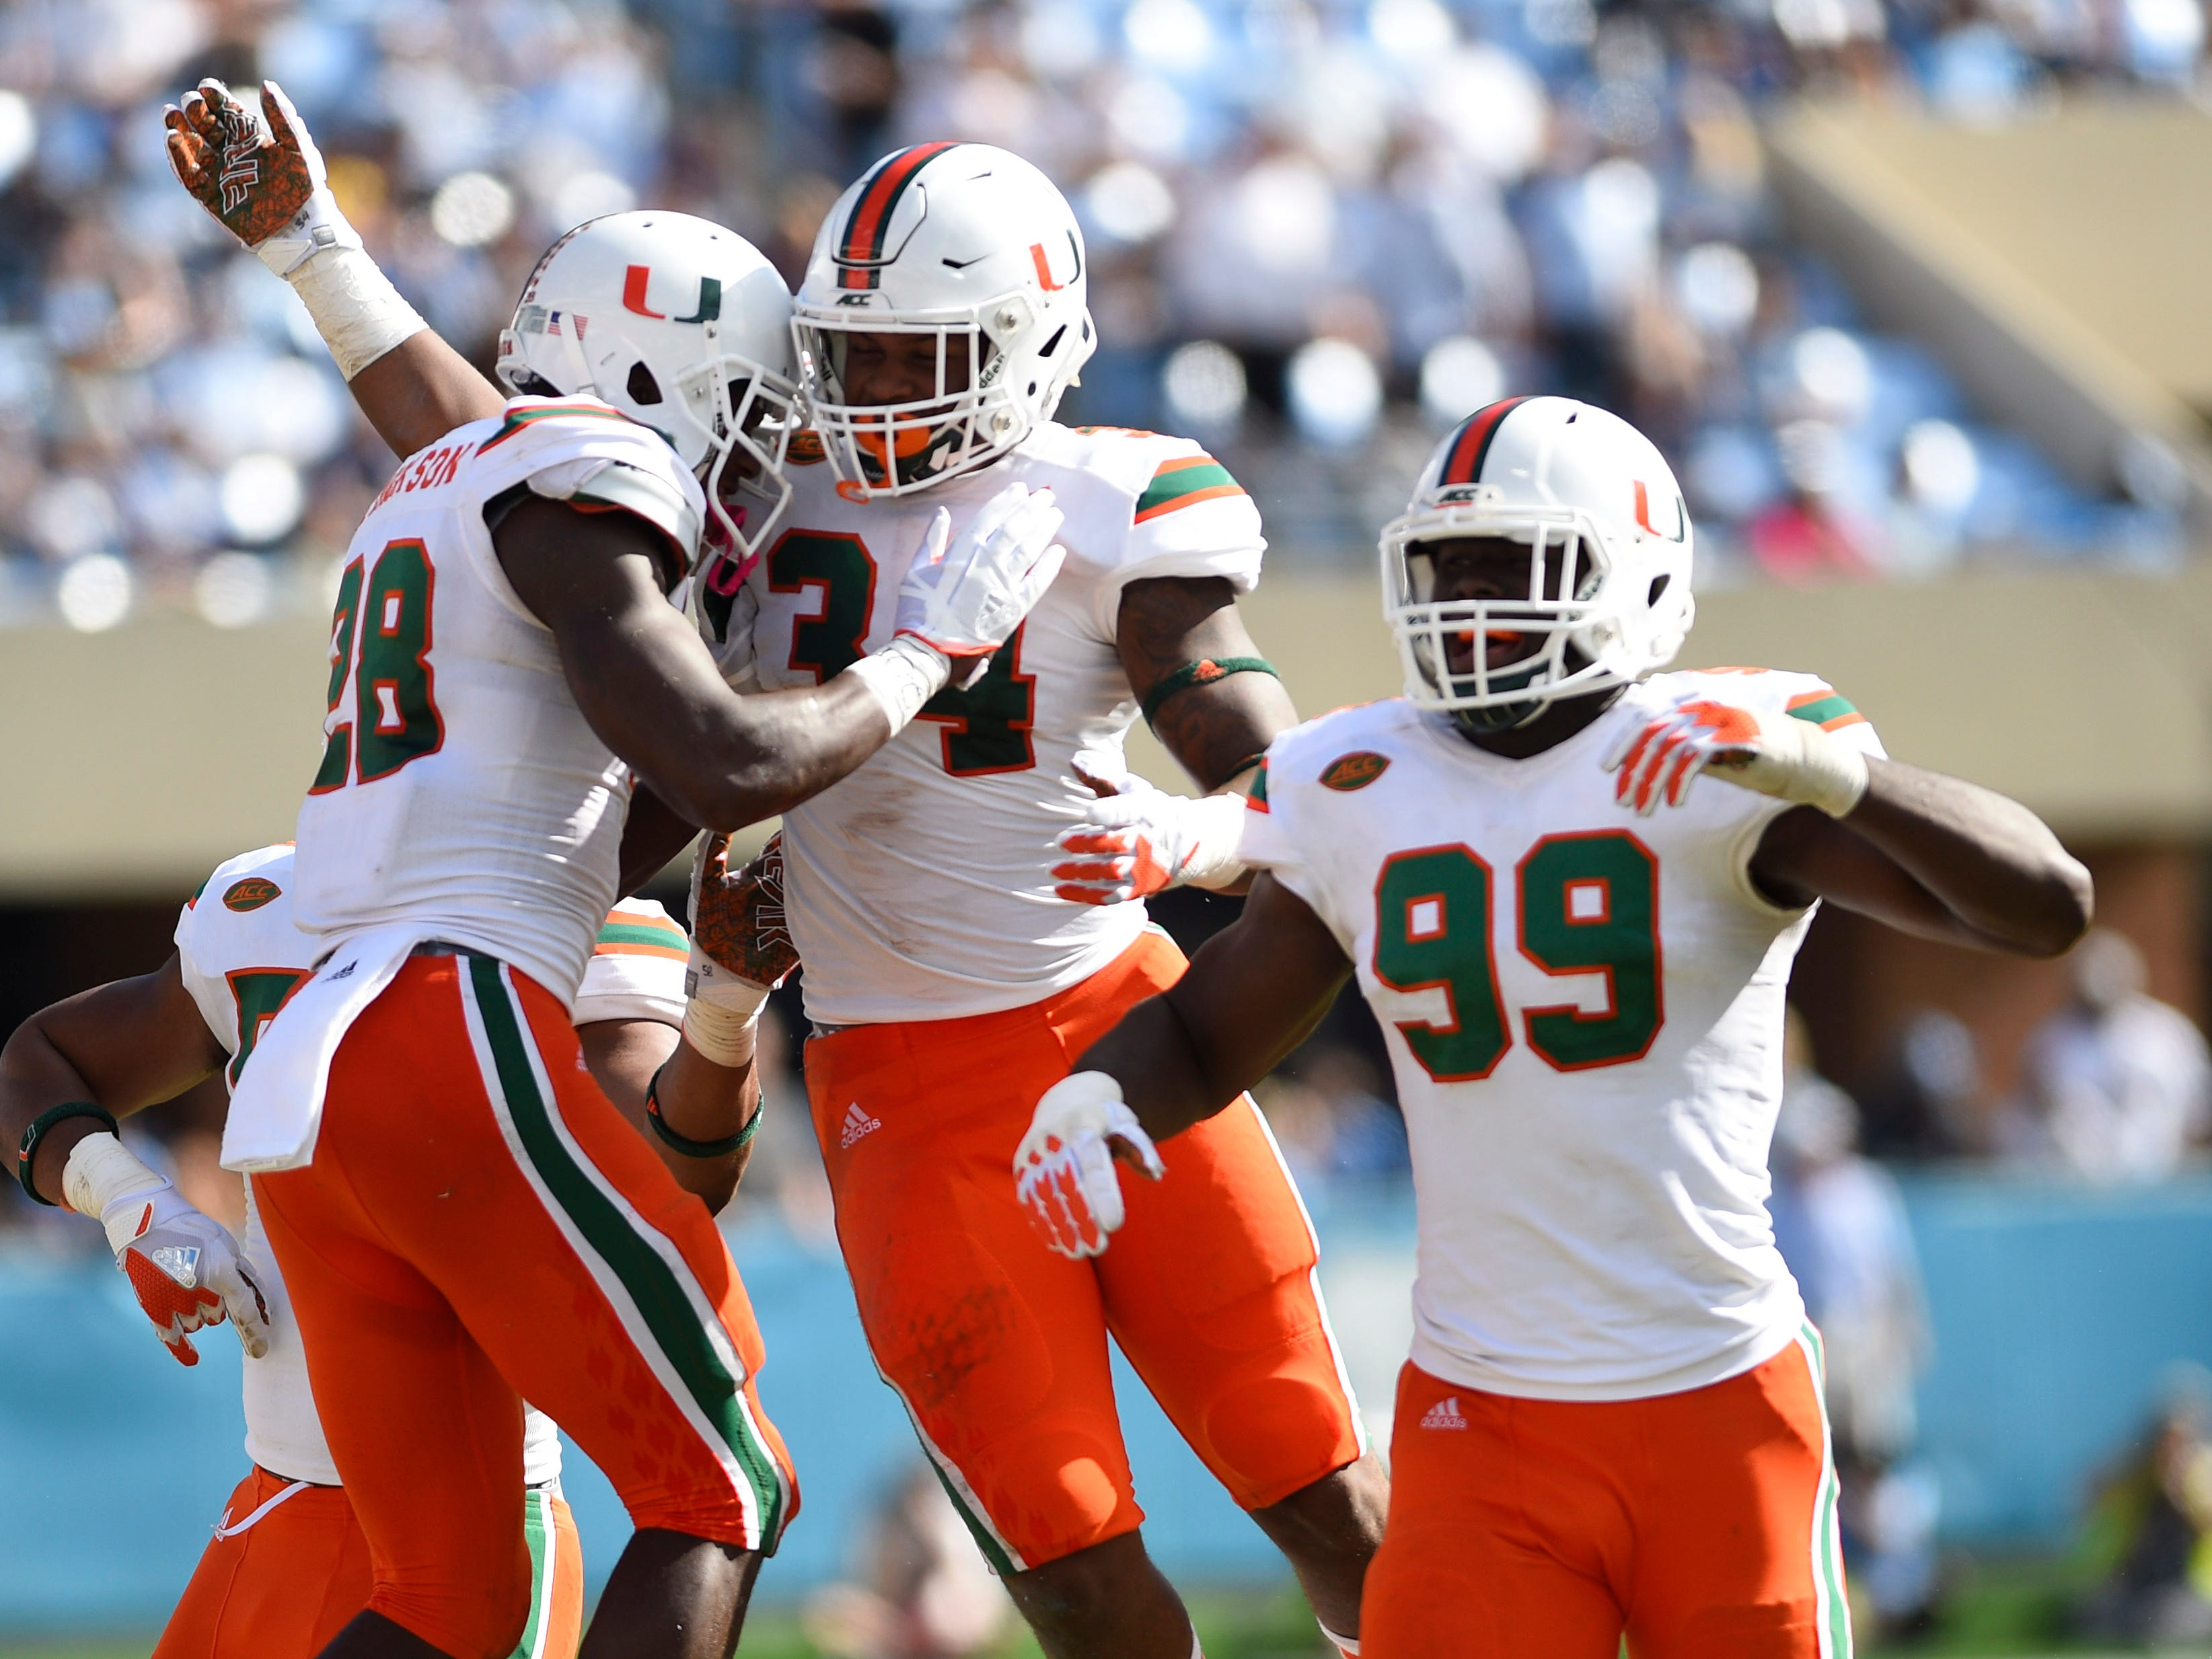 No. 8 Miami Hurricanes (10-3 in 2017).